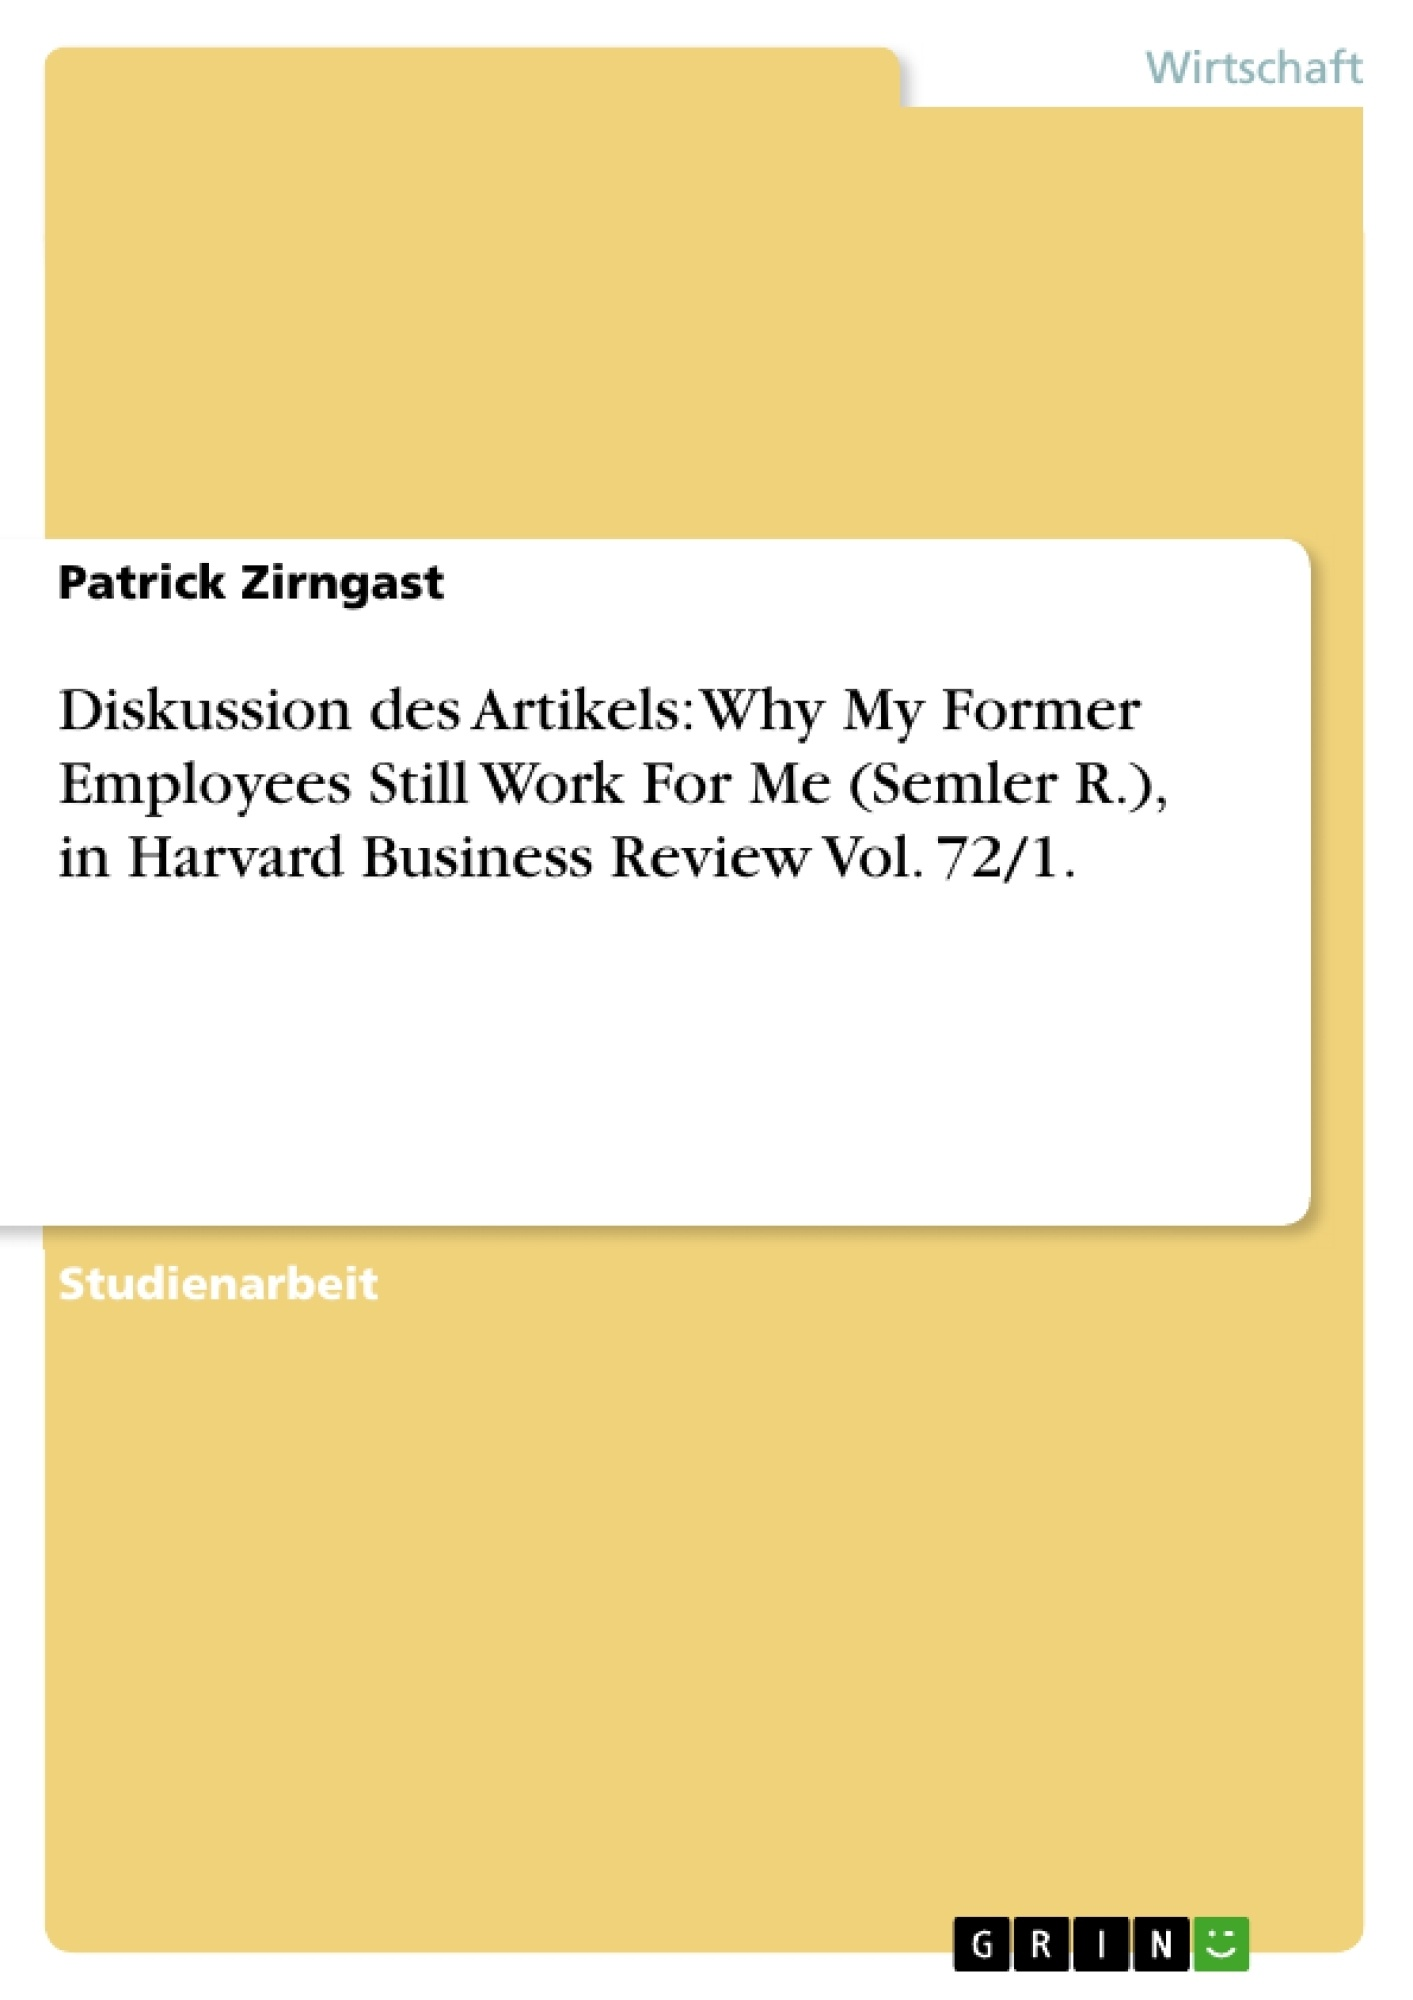 Titel: Diskussion des Artikels: Why My Former Employees Still Work For Me (Semler R.), in Harvard Business Review Vol. 72/1.